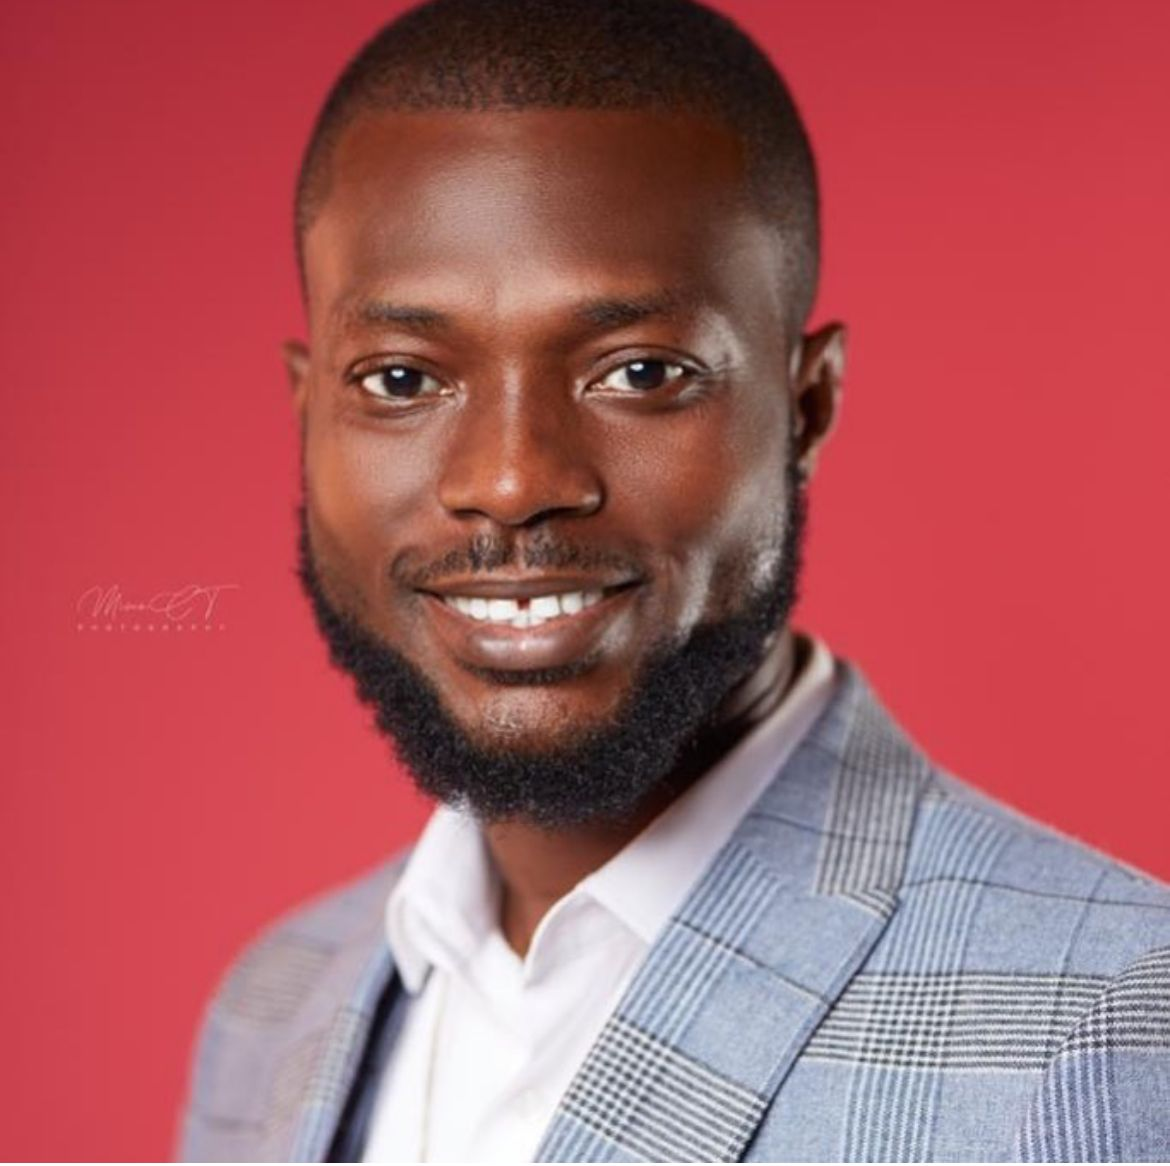 You are currently viewing The Chancellor of Abbeam University, Prophet Abbeam Ampomah Danso has been awarded by the Time Ghana Arts and Entertainment.